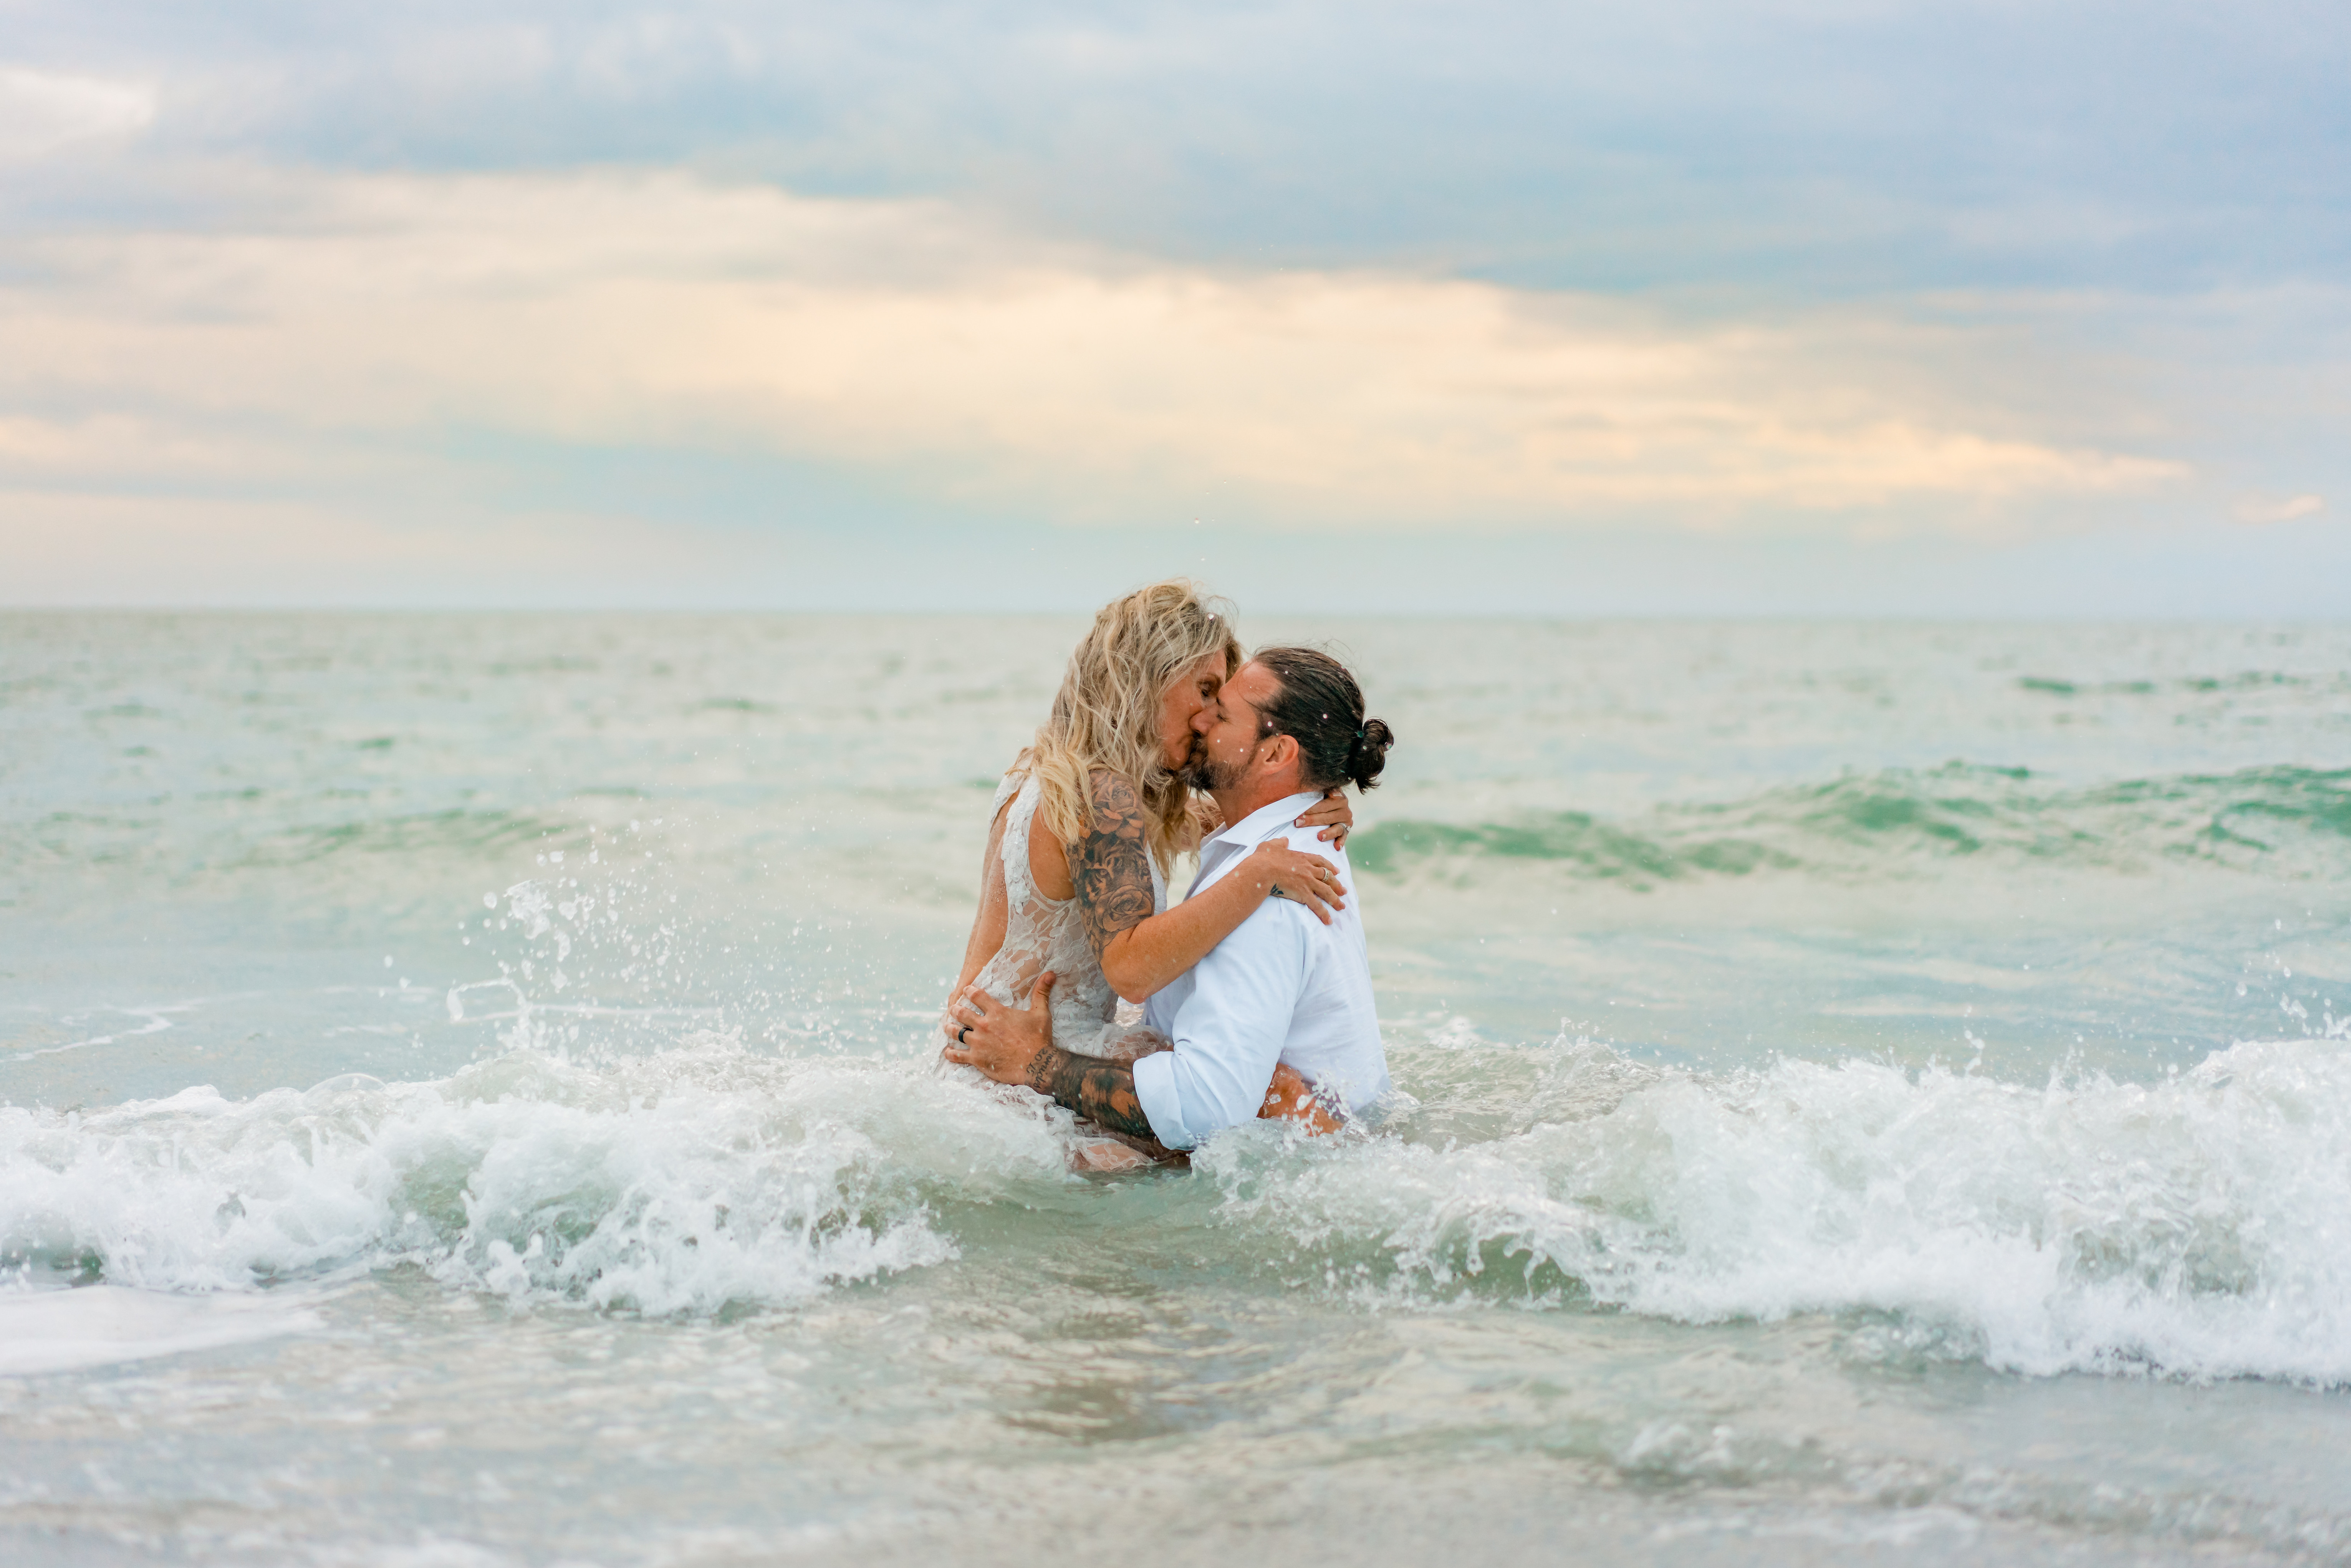 20 Minute Couples Photo Session